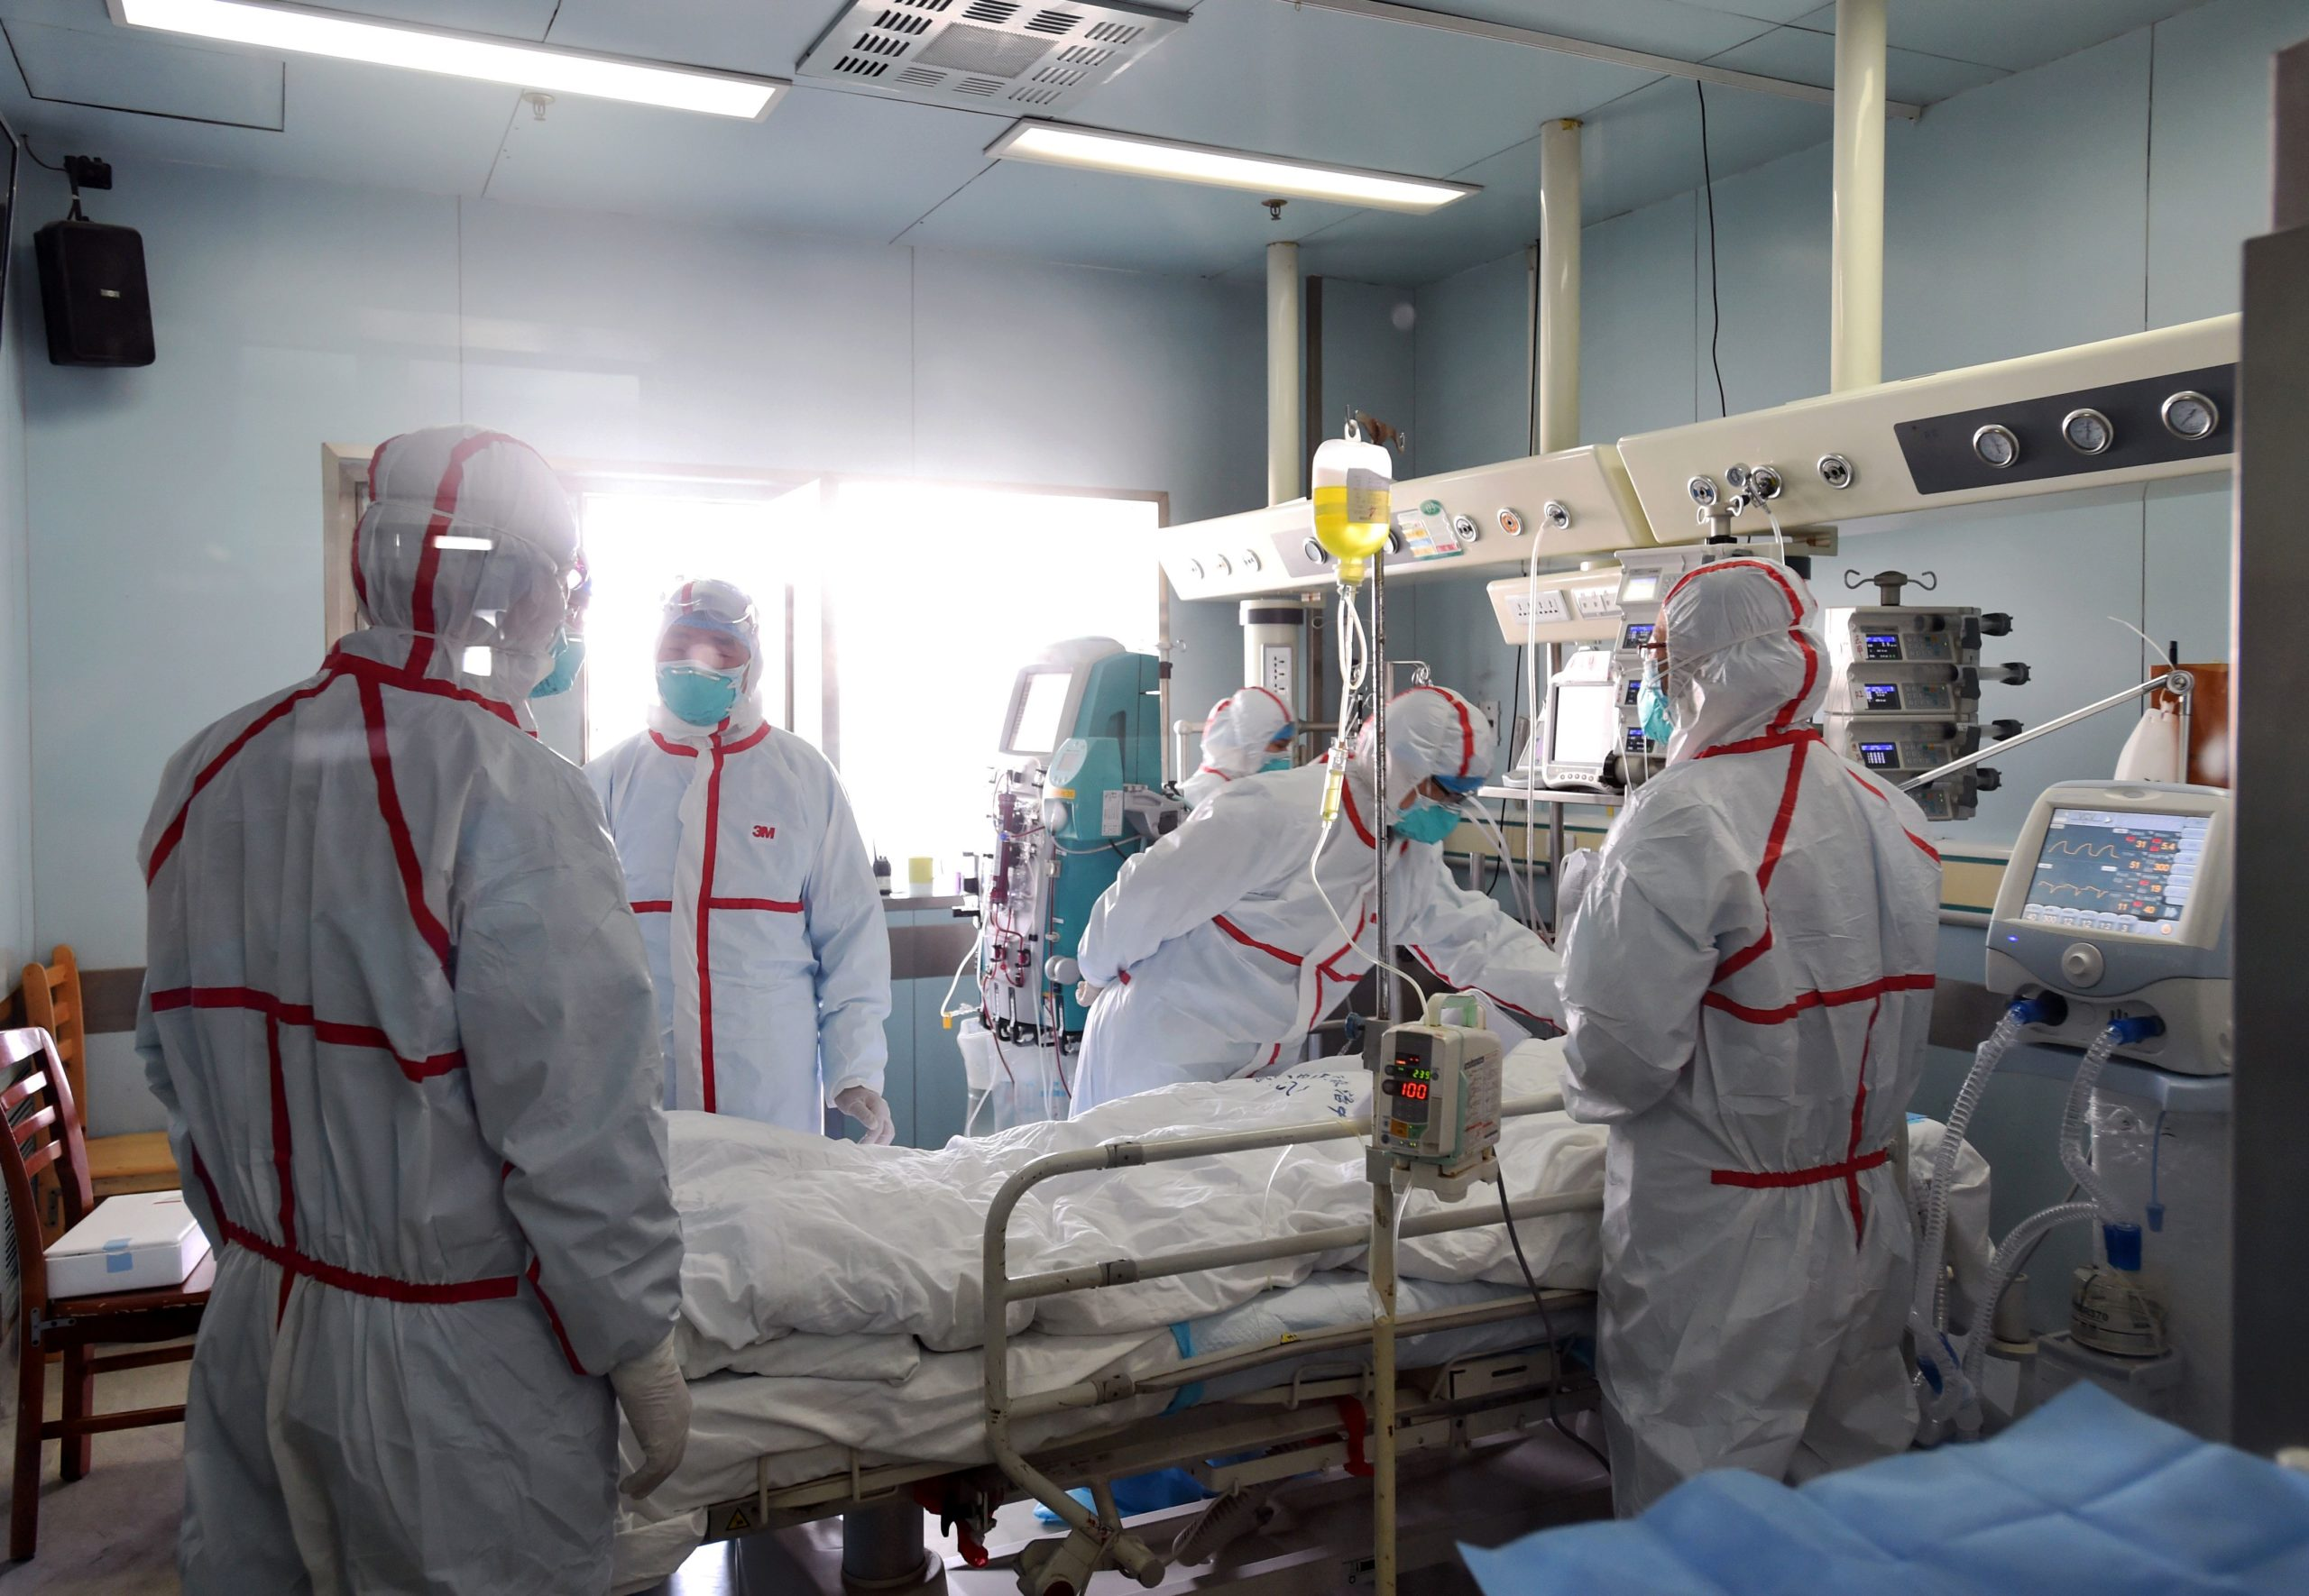 This photo taken on February 12, 2017 shows an H7N9 bird flu patient being treated in a hospital in Wuhan, central China's Hubei province. A number of provinces in China have stepped up efforts to prevent H7N9 avian flu following reports of scattered human cases of the virus, state media reported. / AFP / STR / China OUT (Photo credit should read STR/AFP via Getty Images)